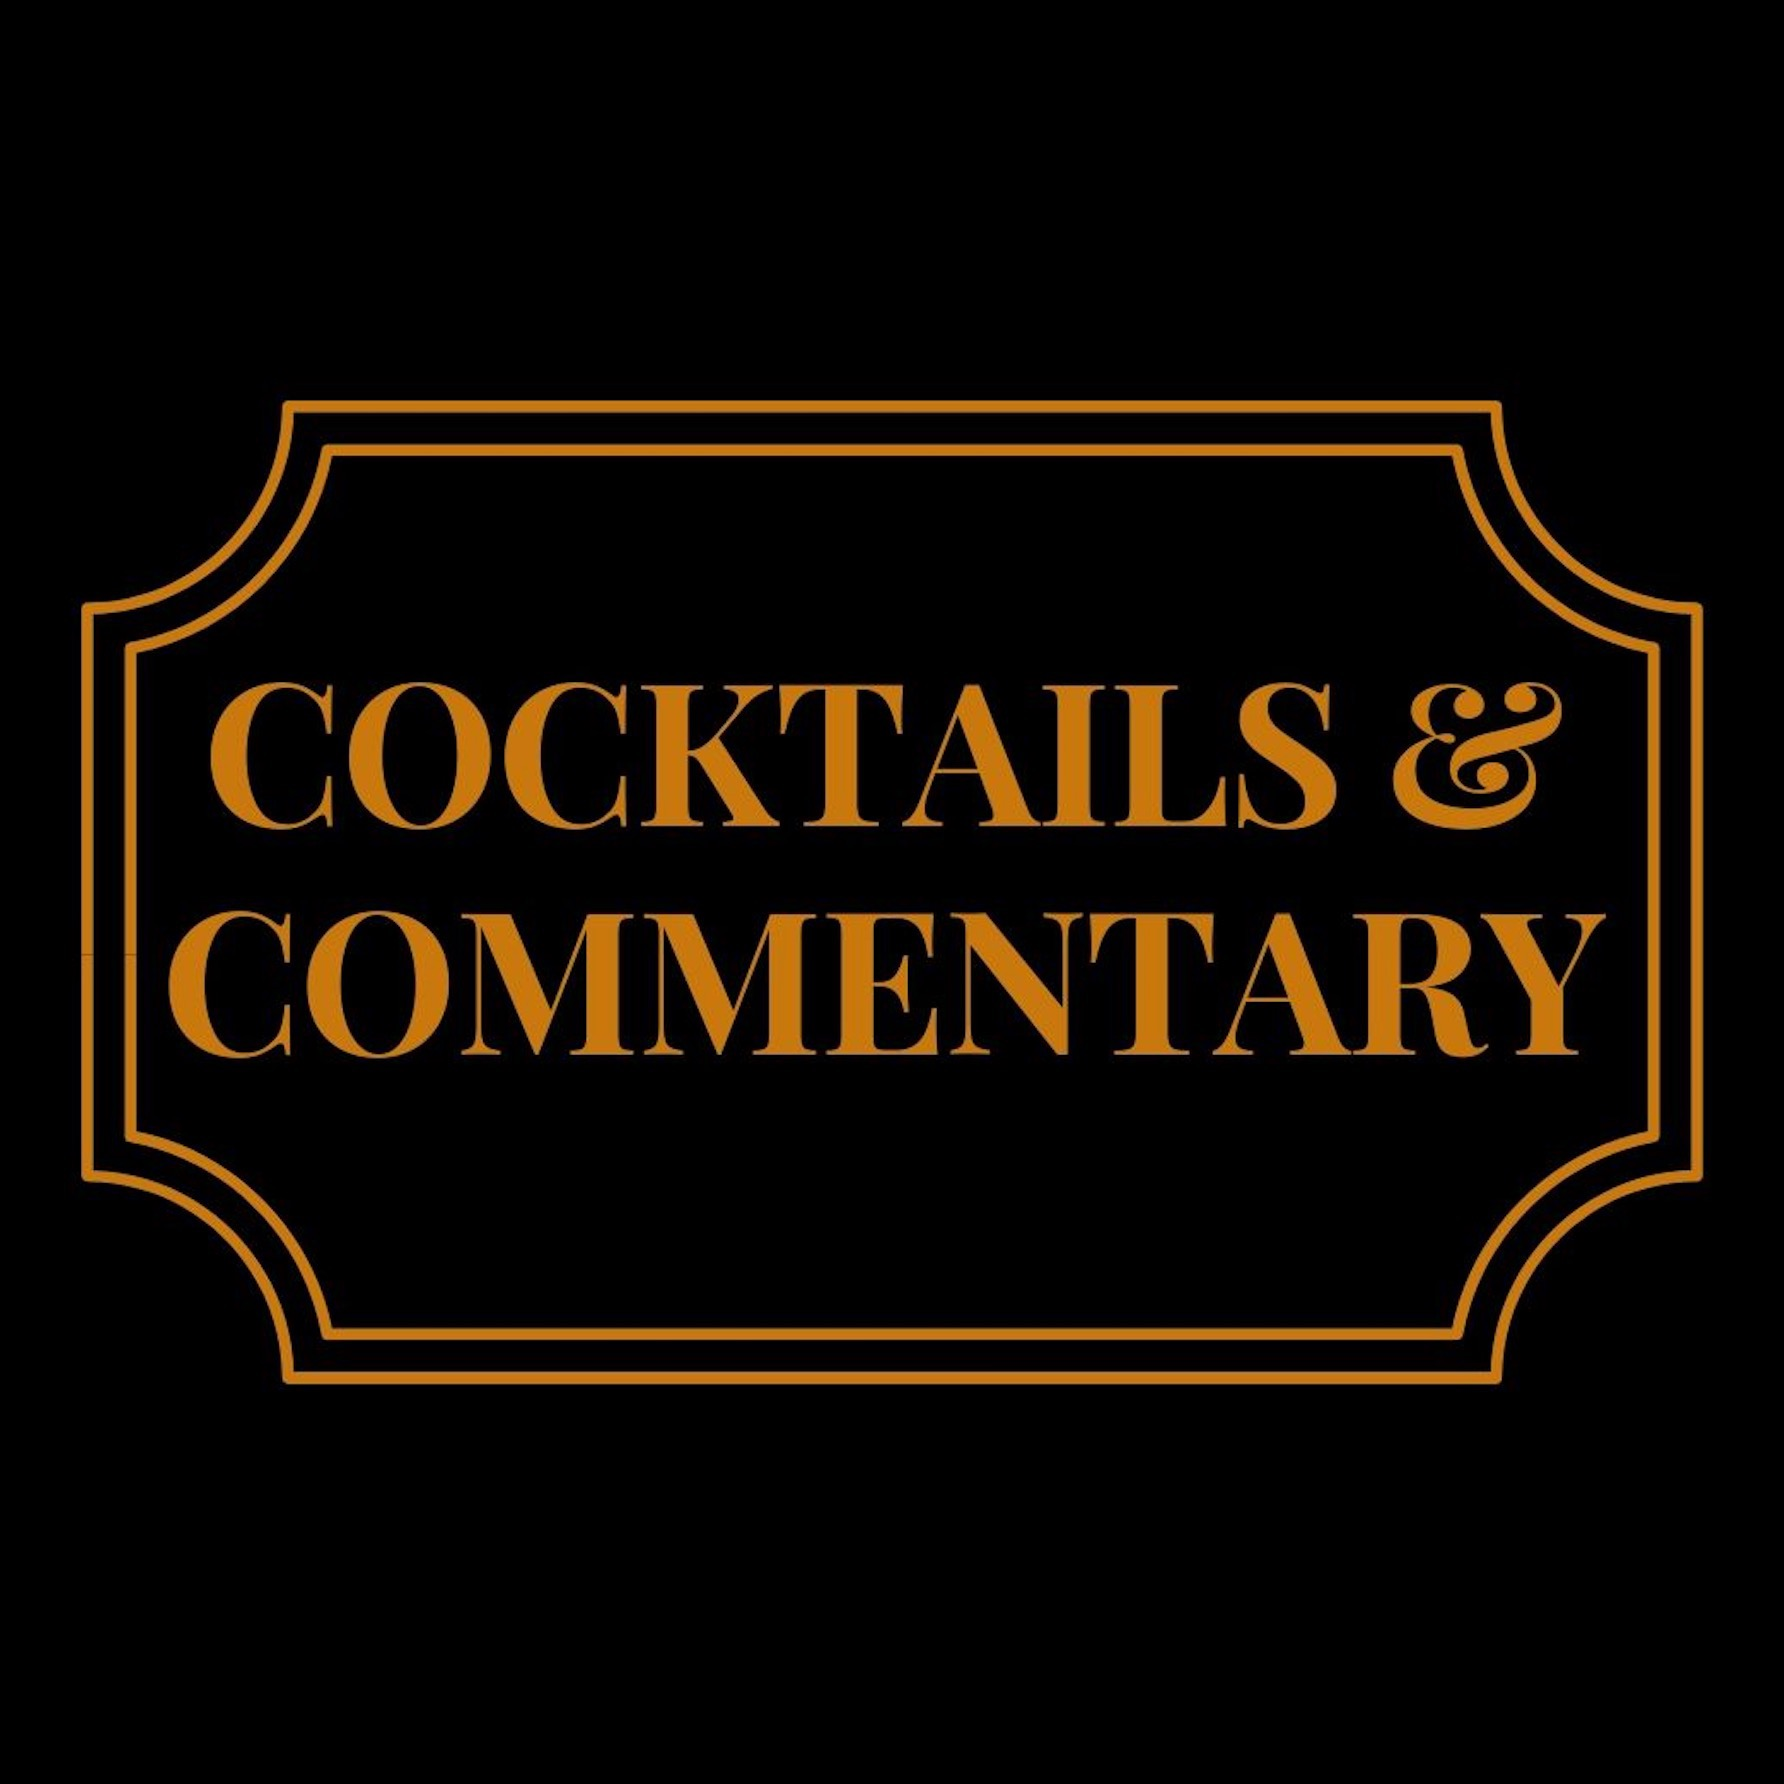 Cocktails & Commentary | Listen Free on Castbox